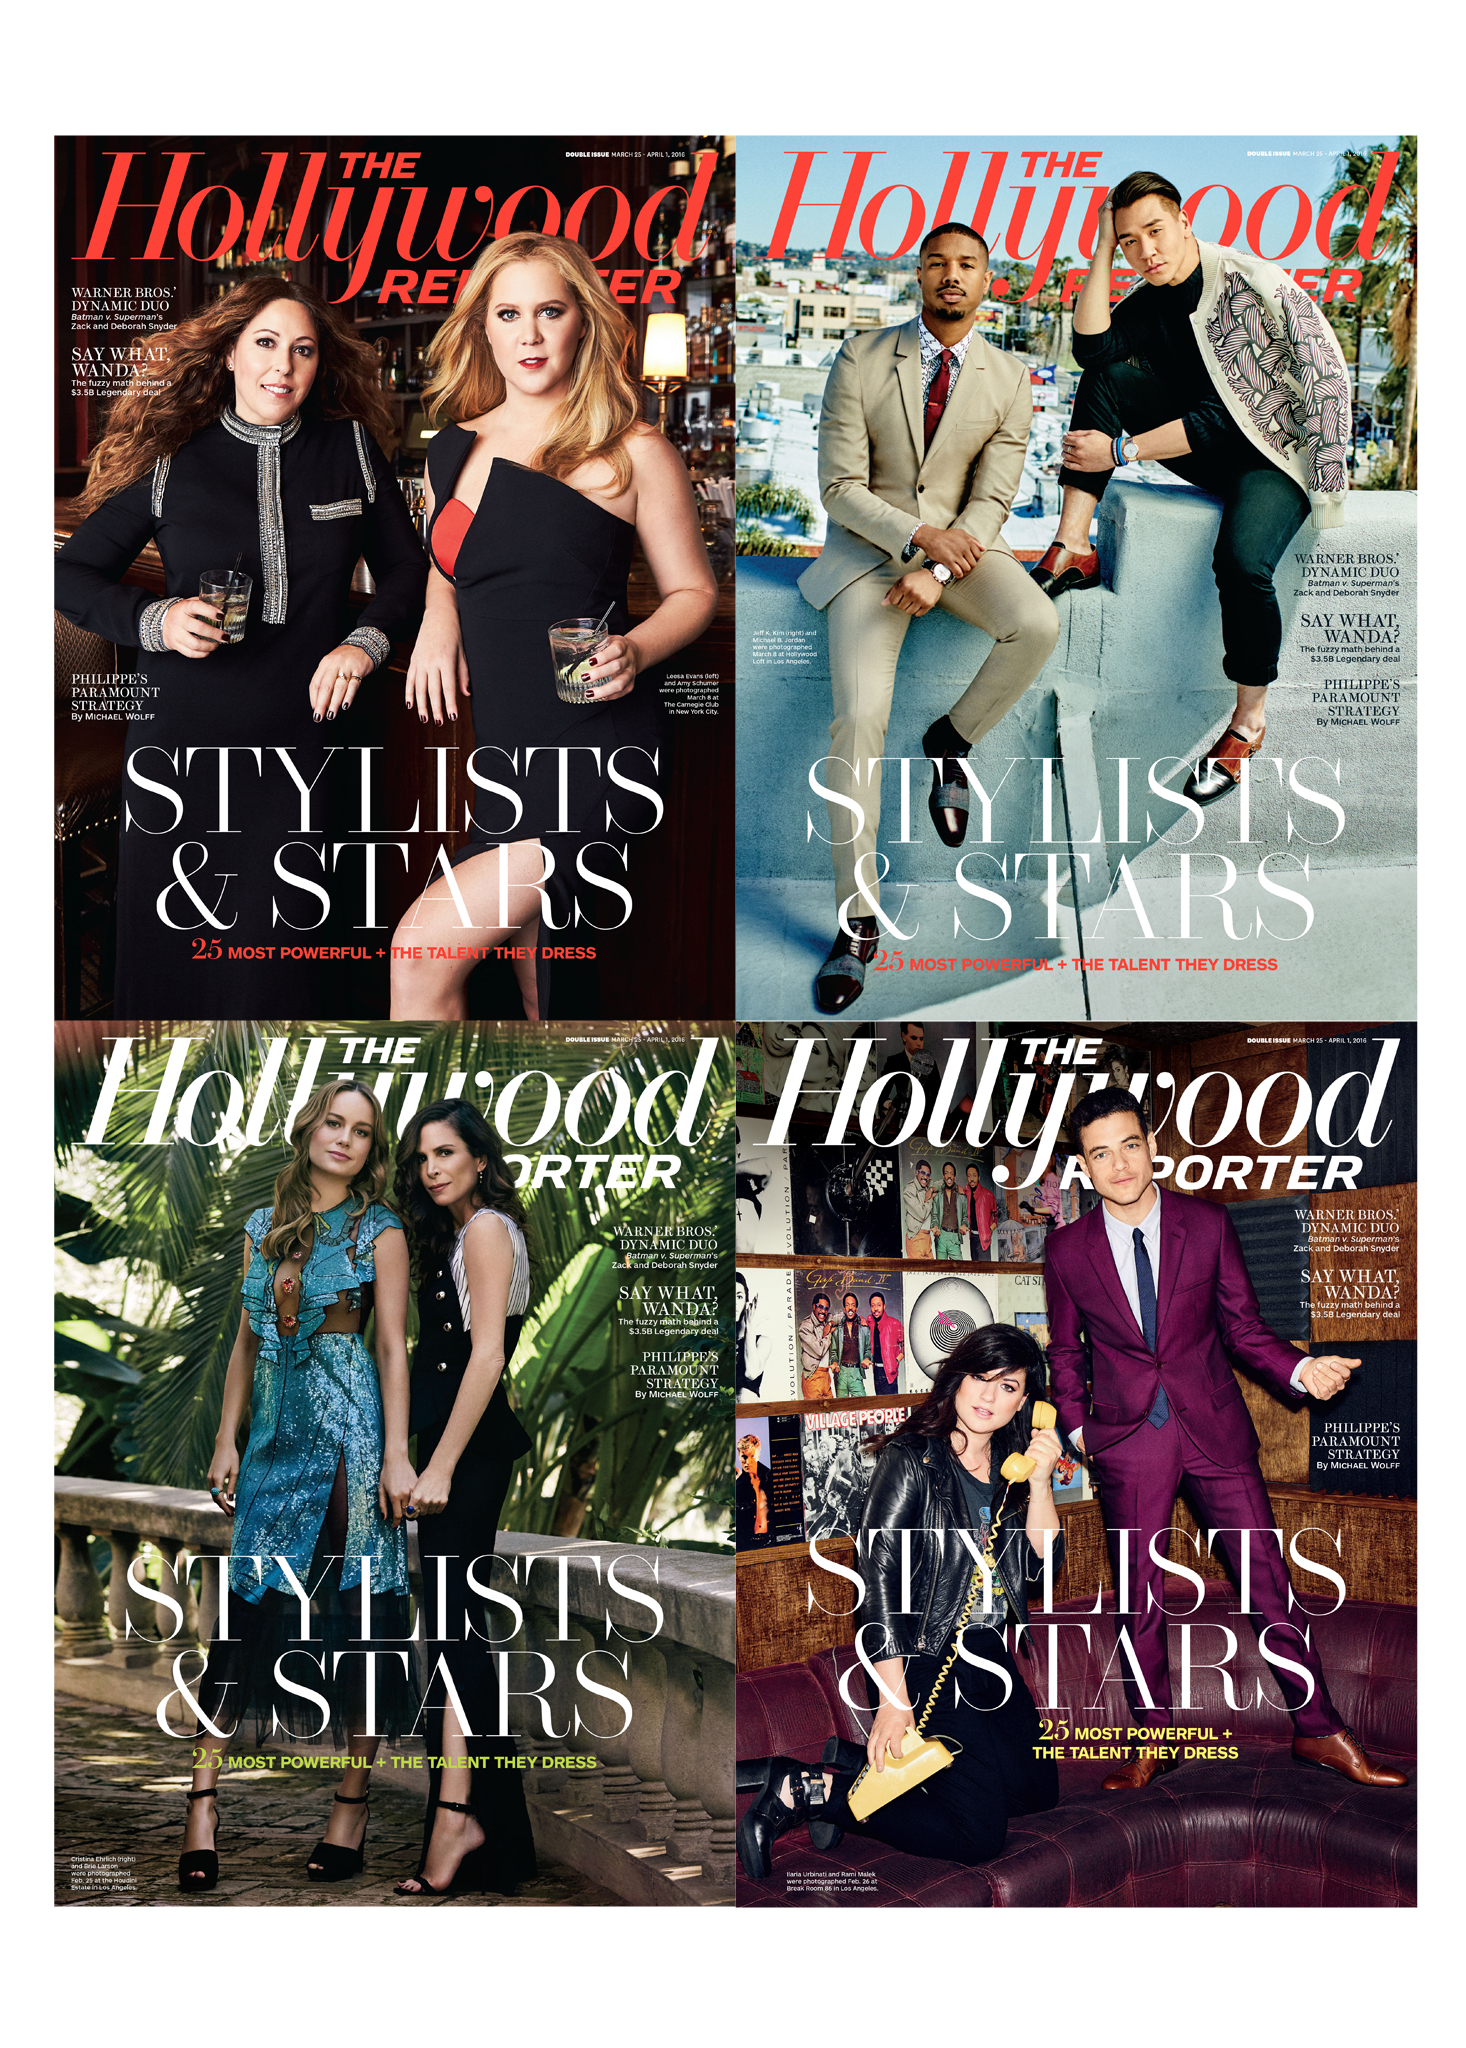 The Hollywood Reporter Top Stylists List - Brie Larson, Amy Schumer